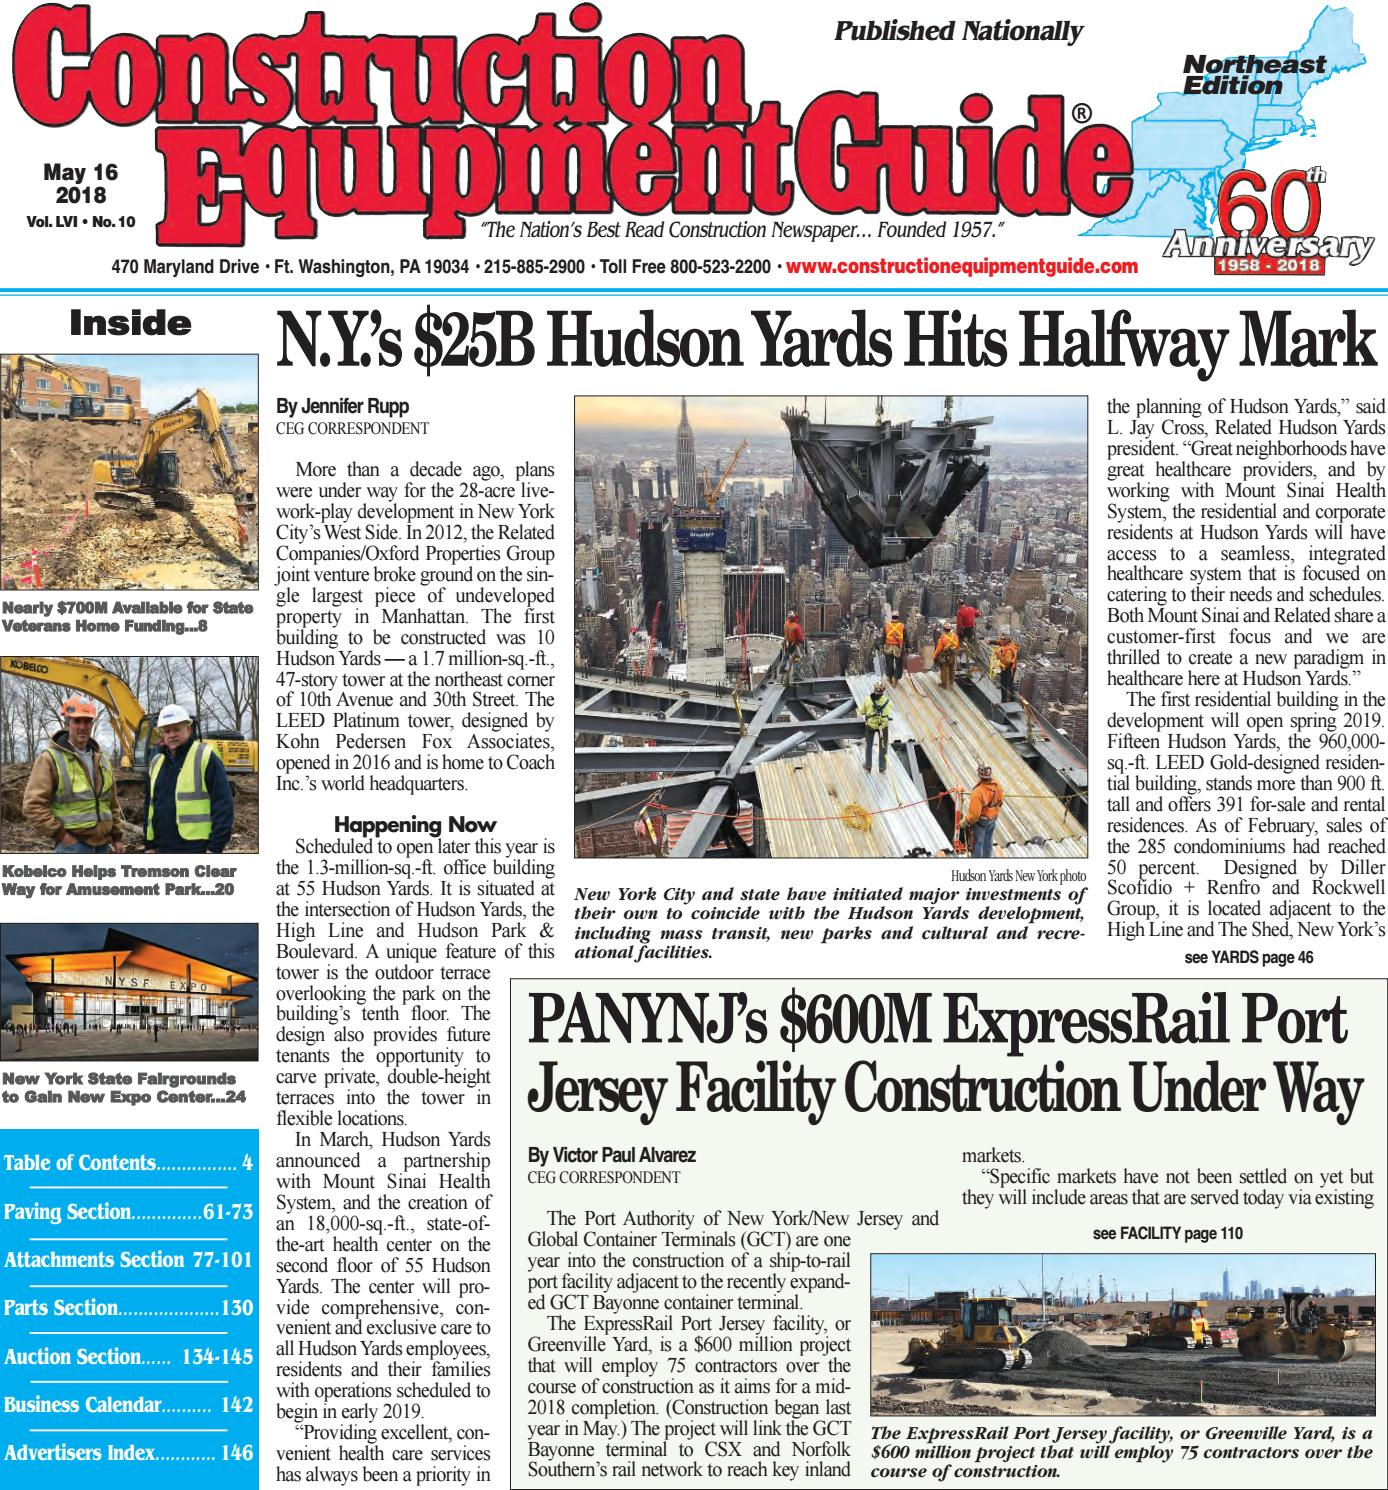 Northeast 10 May 16, 2018 by Construction Equipment Guide